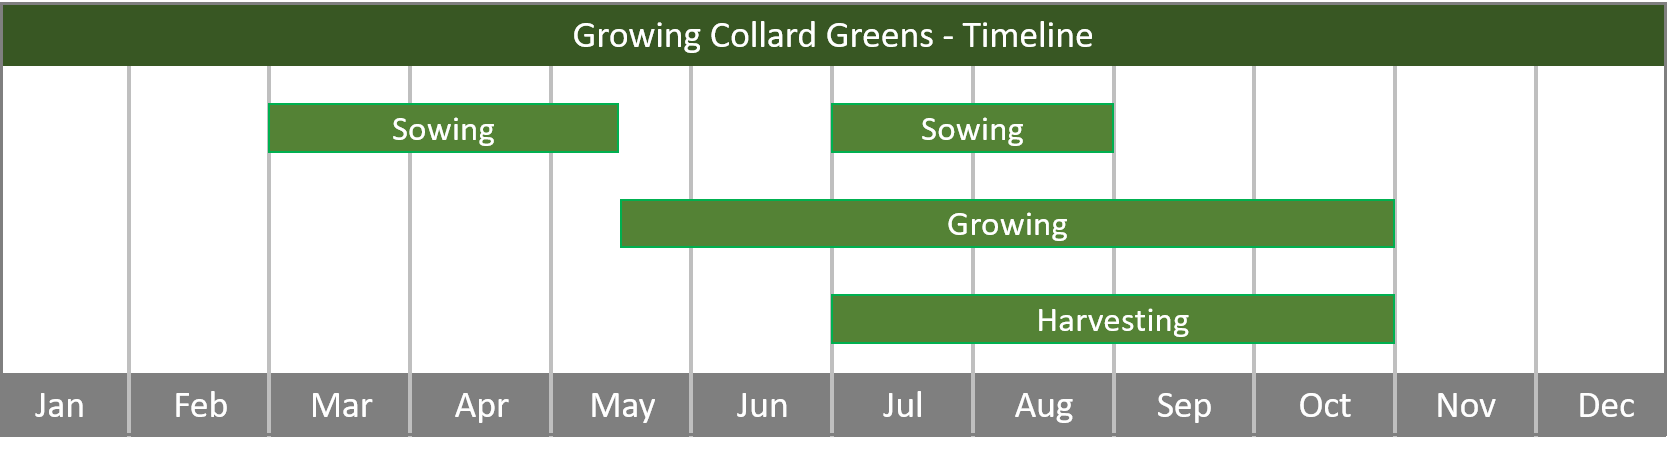 how to grow collard greens from seed to harvest at home timeline